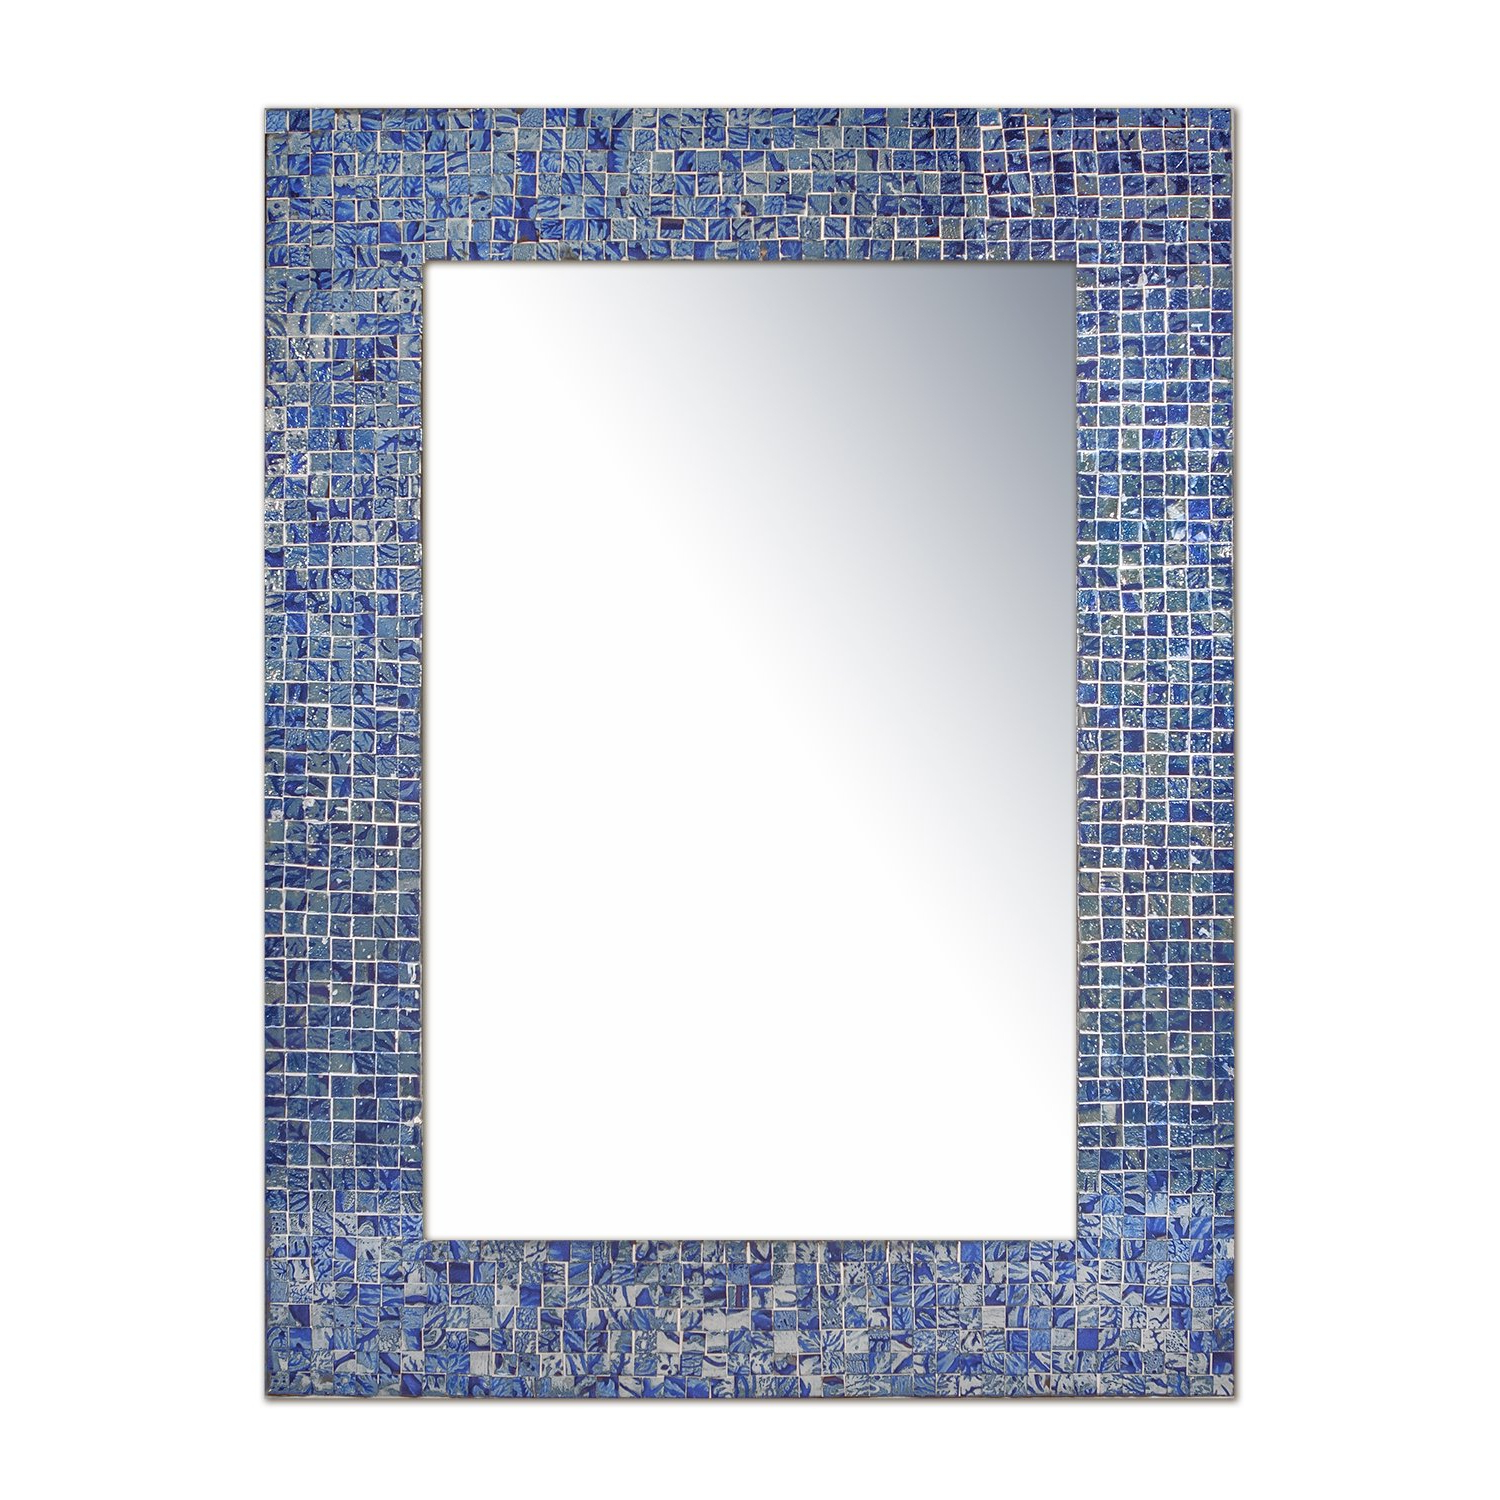 """Decorshore 24""""x18"""" Mosaic Wall Mirror, Accent Mirror, Rectangular Decorative Mirror With Mosaic Glass Tile Frame In Shimmering Sapphire & Silver Hues Intended For 2020 Glass Mosaic Wall Mirrors (View 9 of 20)"""